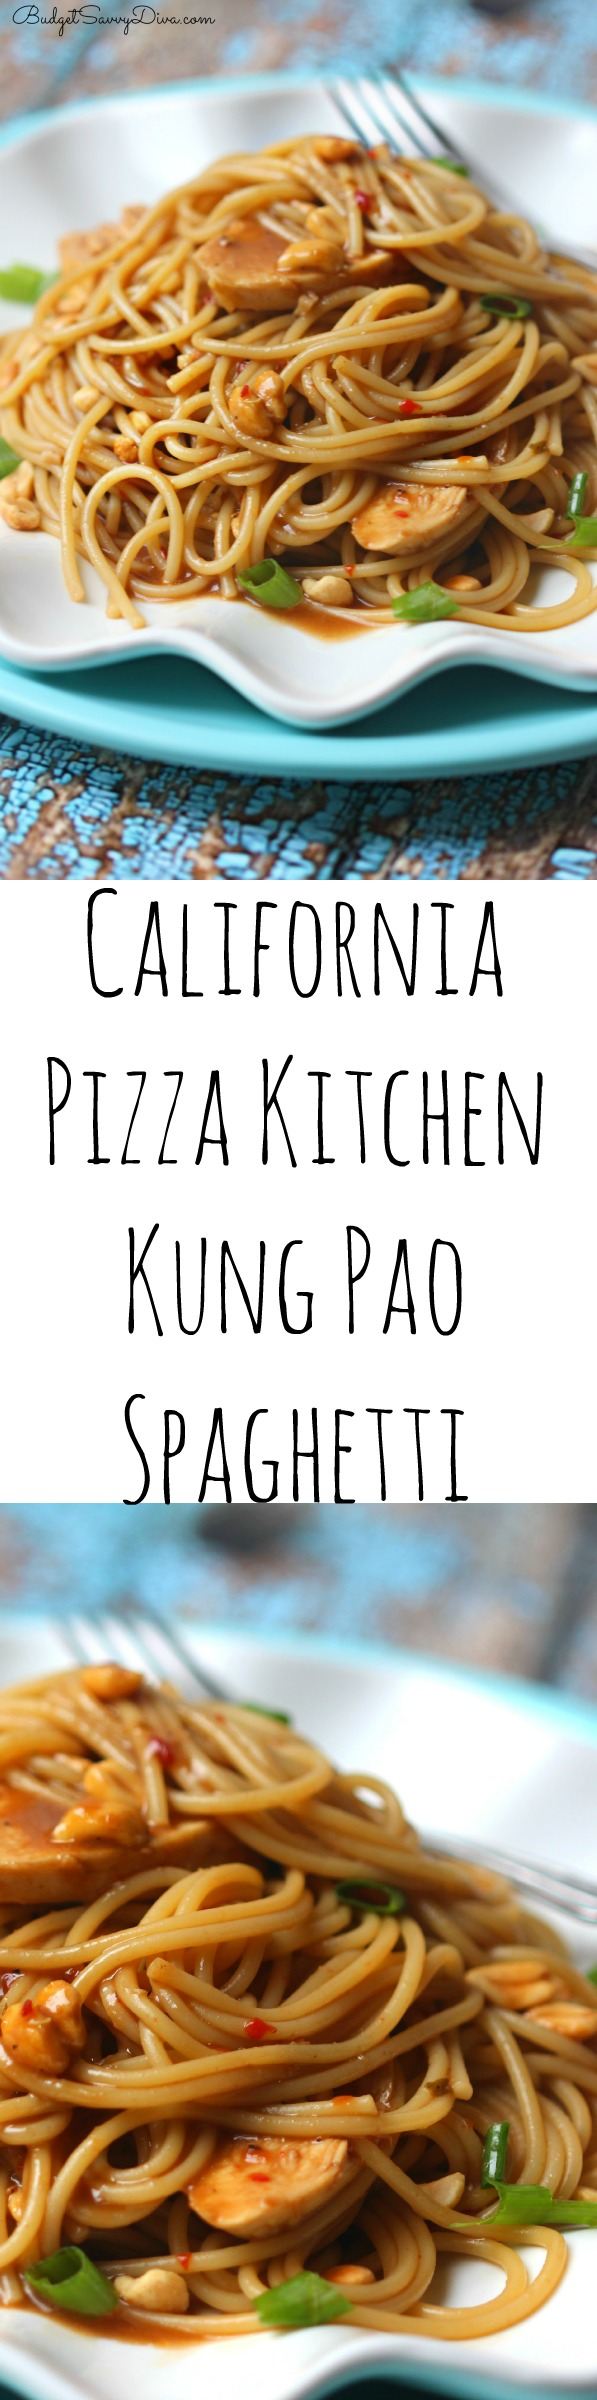 California's Pizza Kitchen Kung Pao Spaghetti Recipe